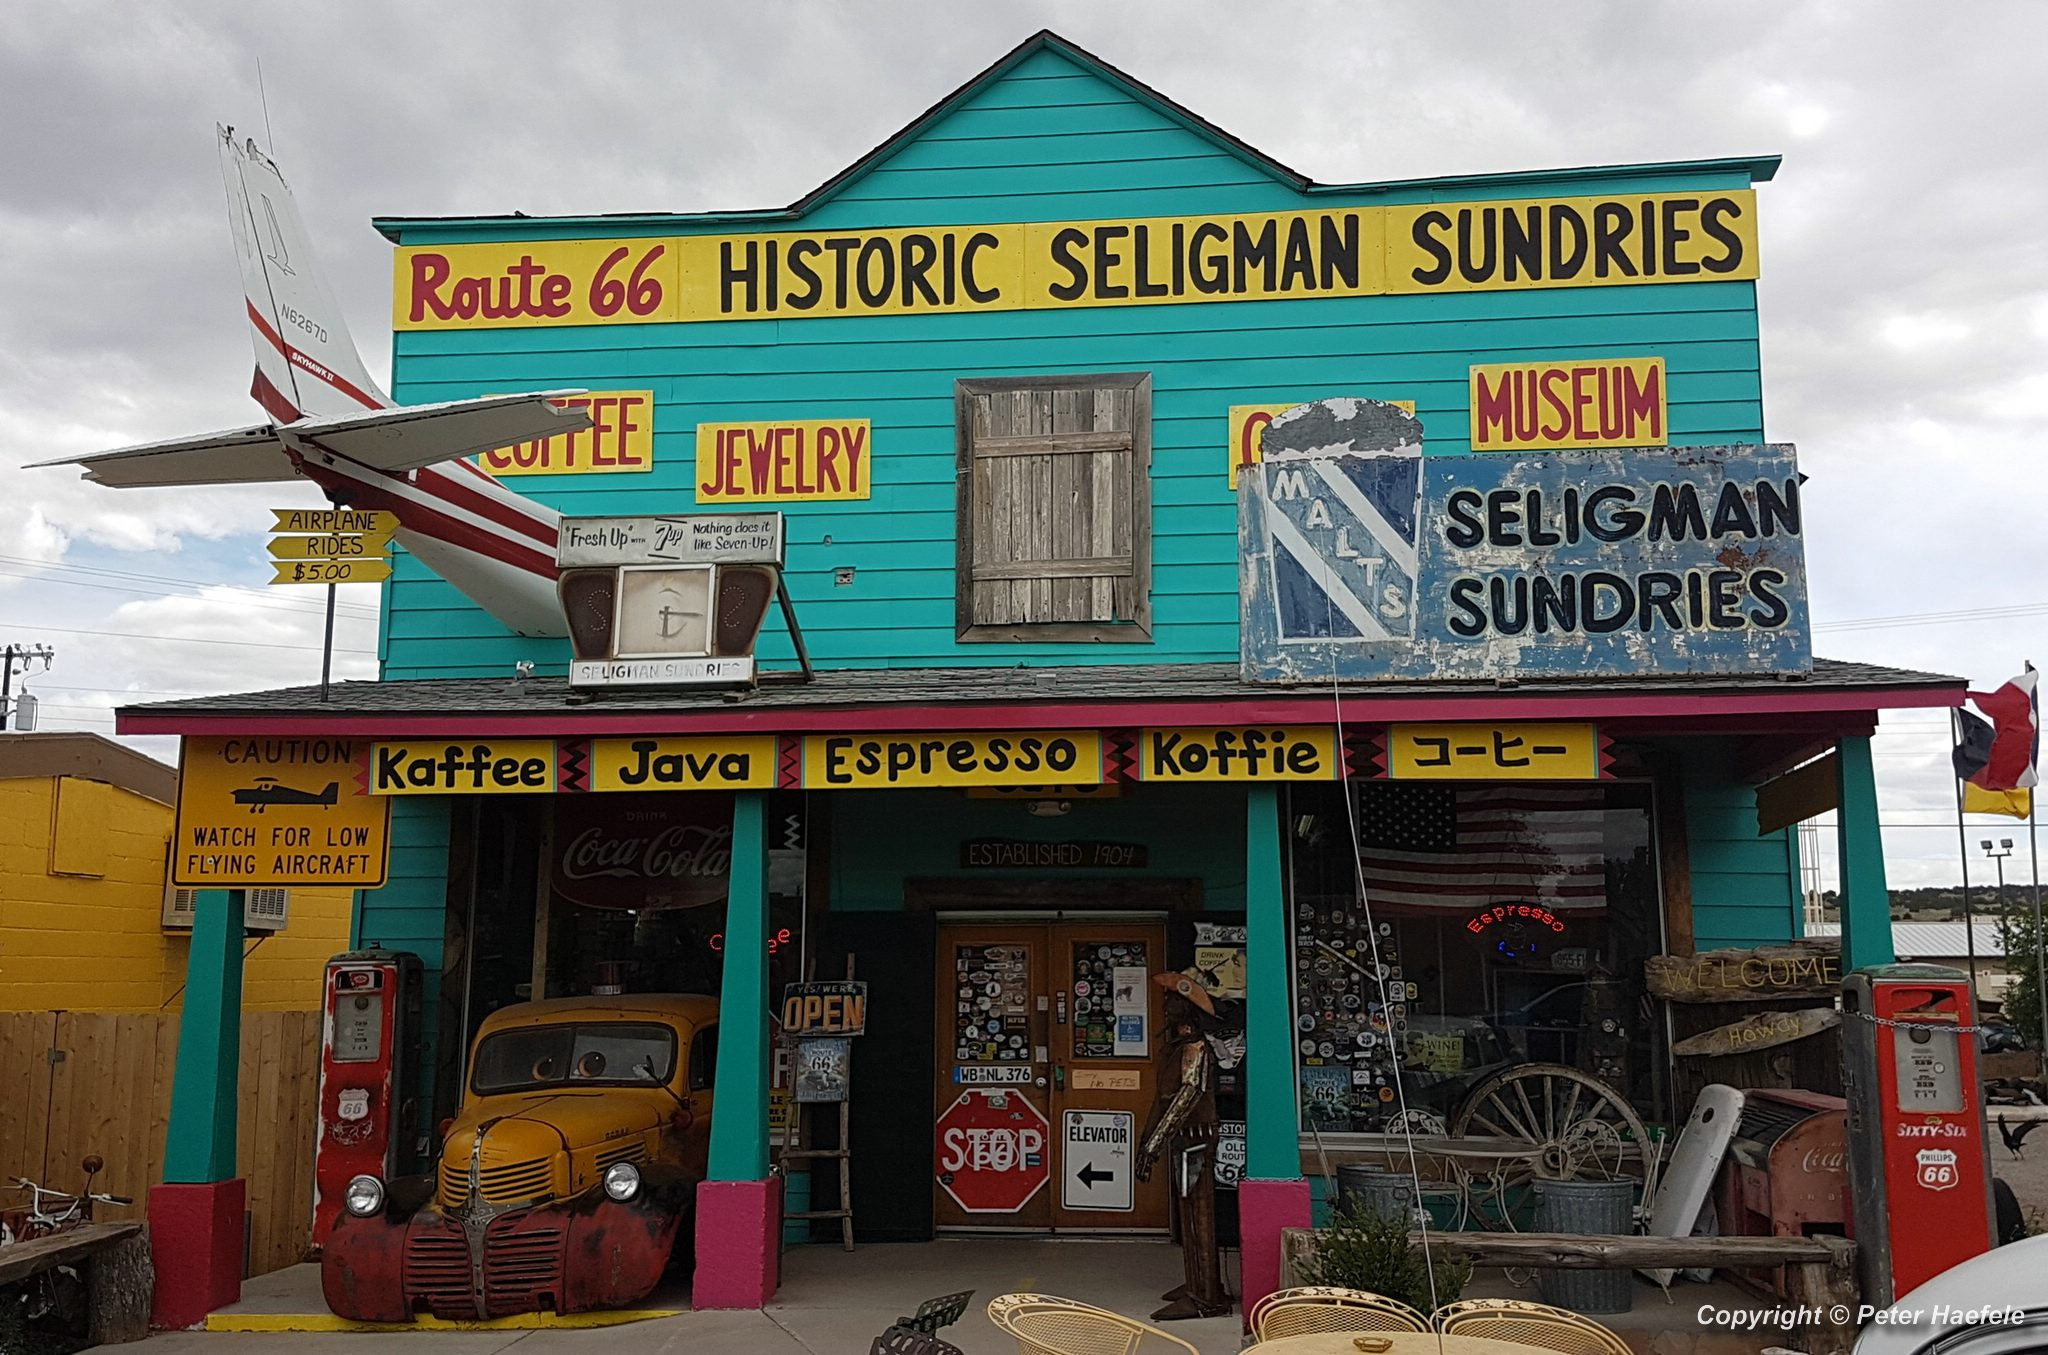 Roadtrip USA - Seligman - Birthplace of Historic Route 66